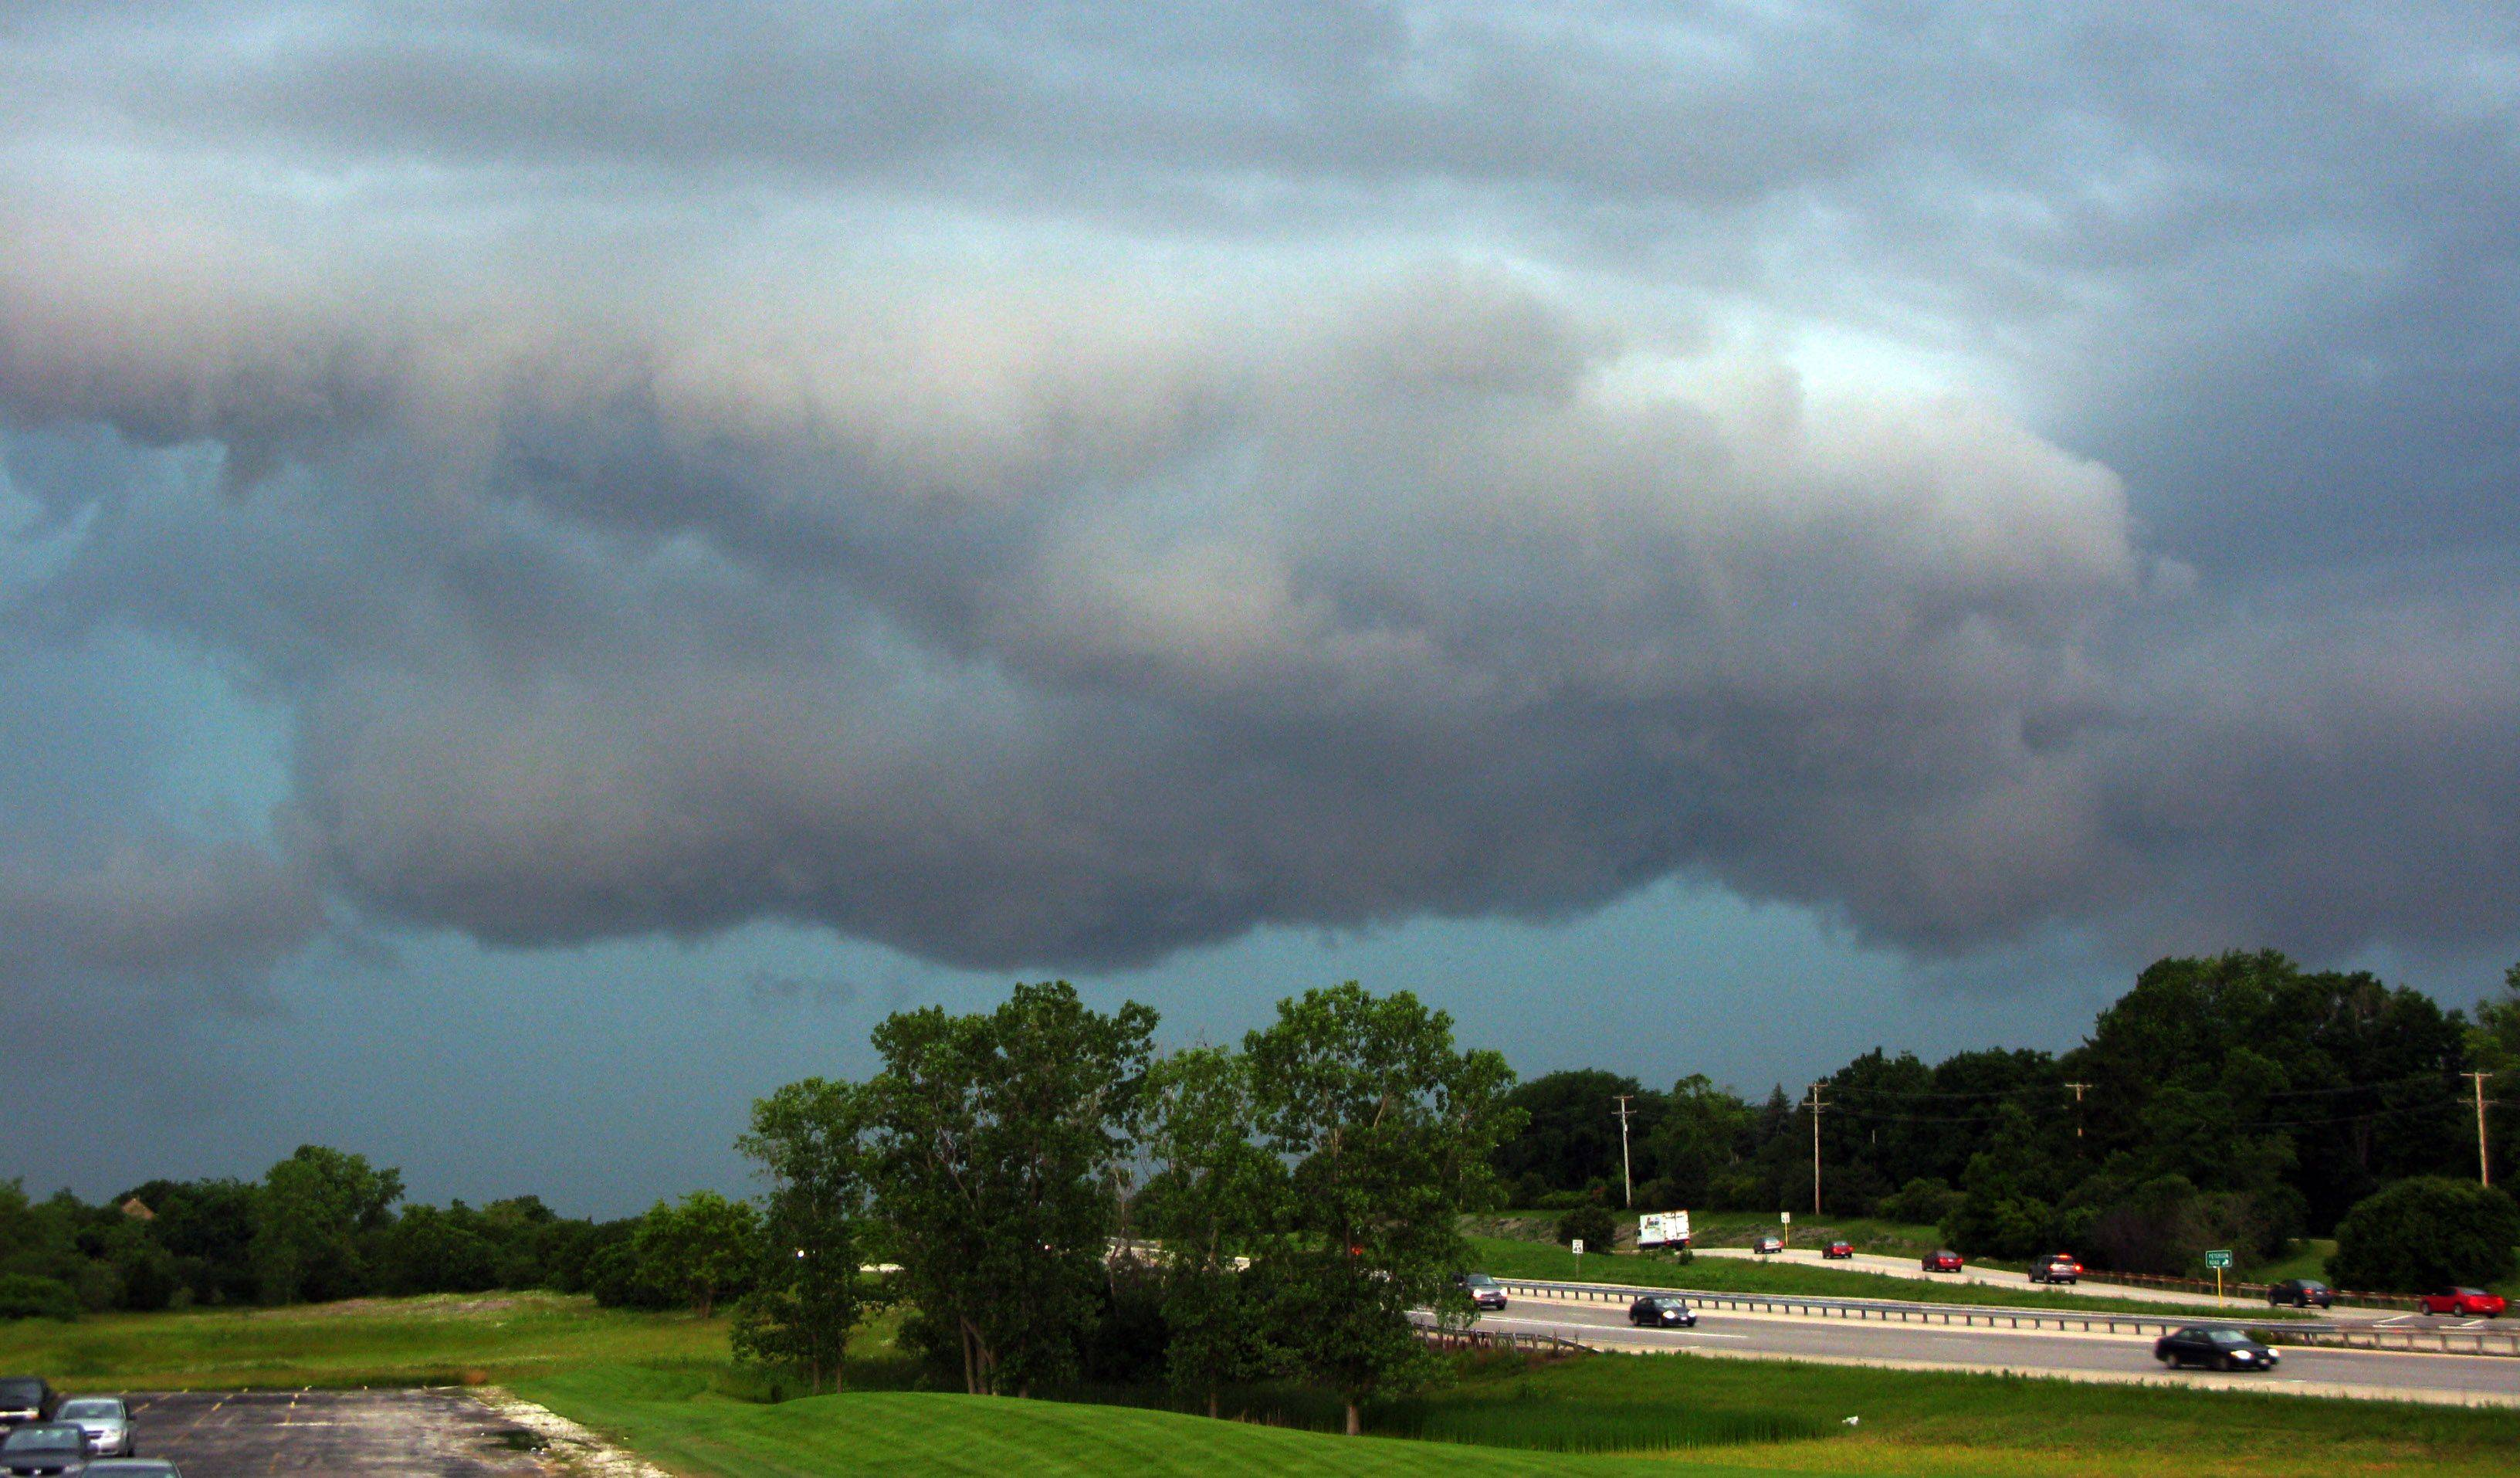 Storm clouds roll into Libertyville with high winds and heavy rain close behind.